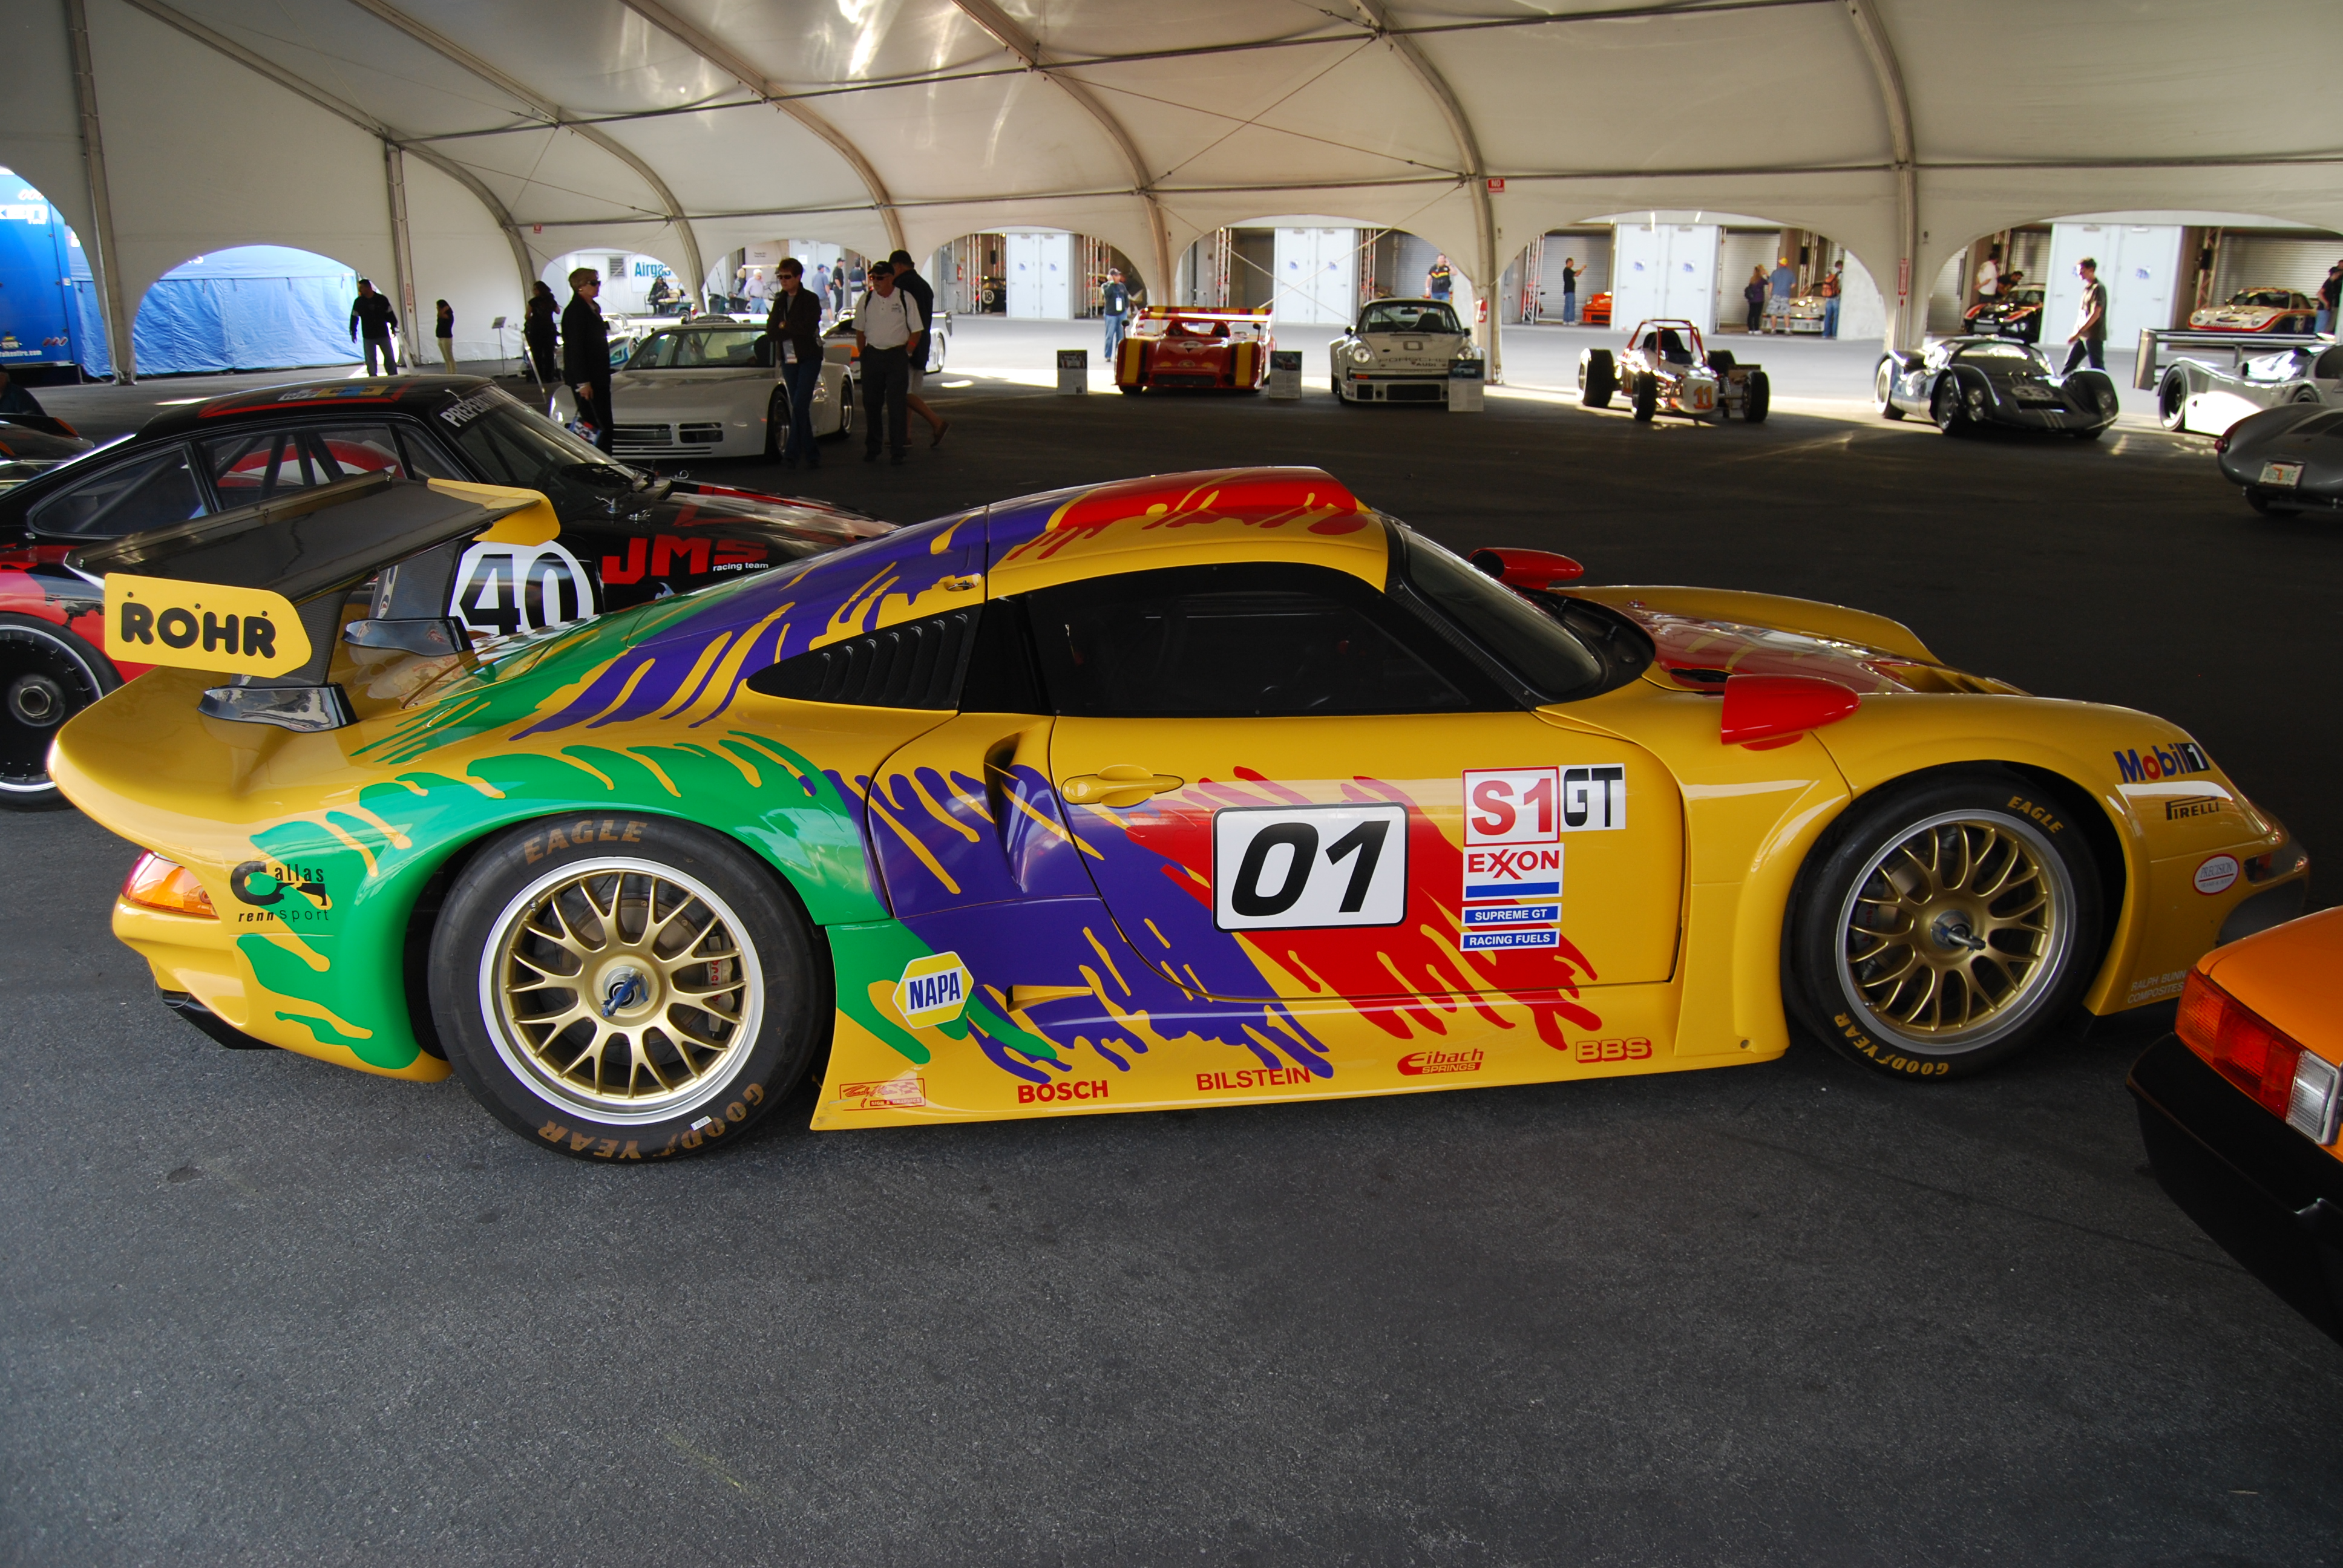 Rohr_911_GT1_1996_(6283353306) Breathtaking Autoart Porsche 911 Gt1 Review Cars Trend